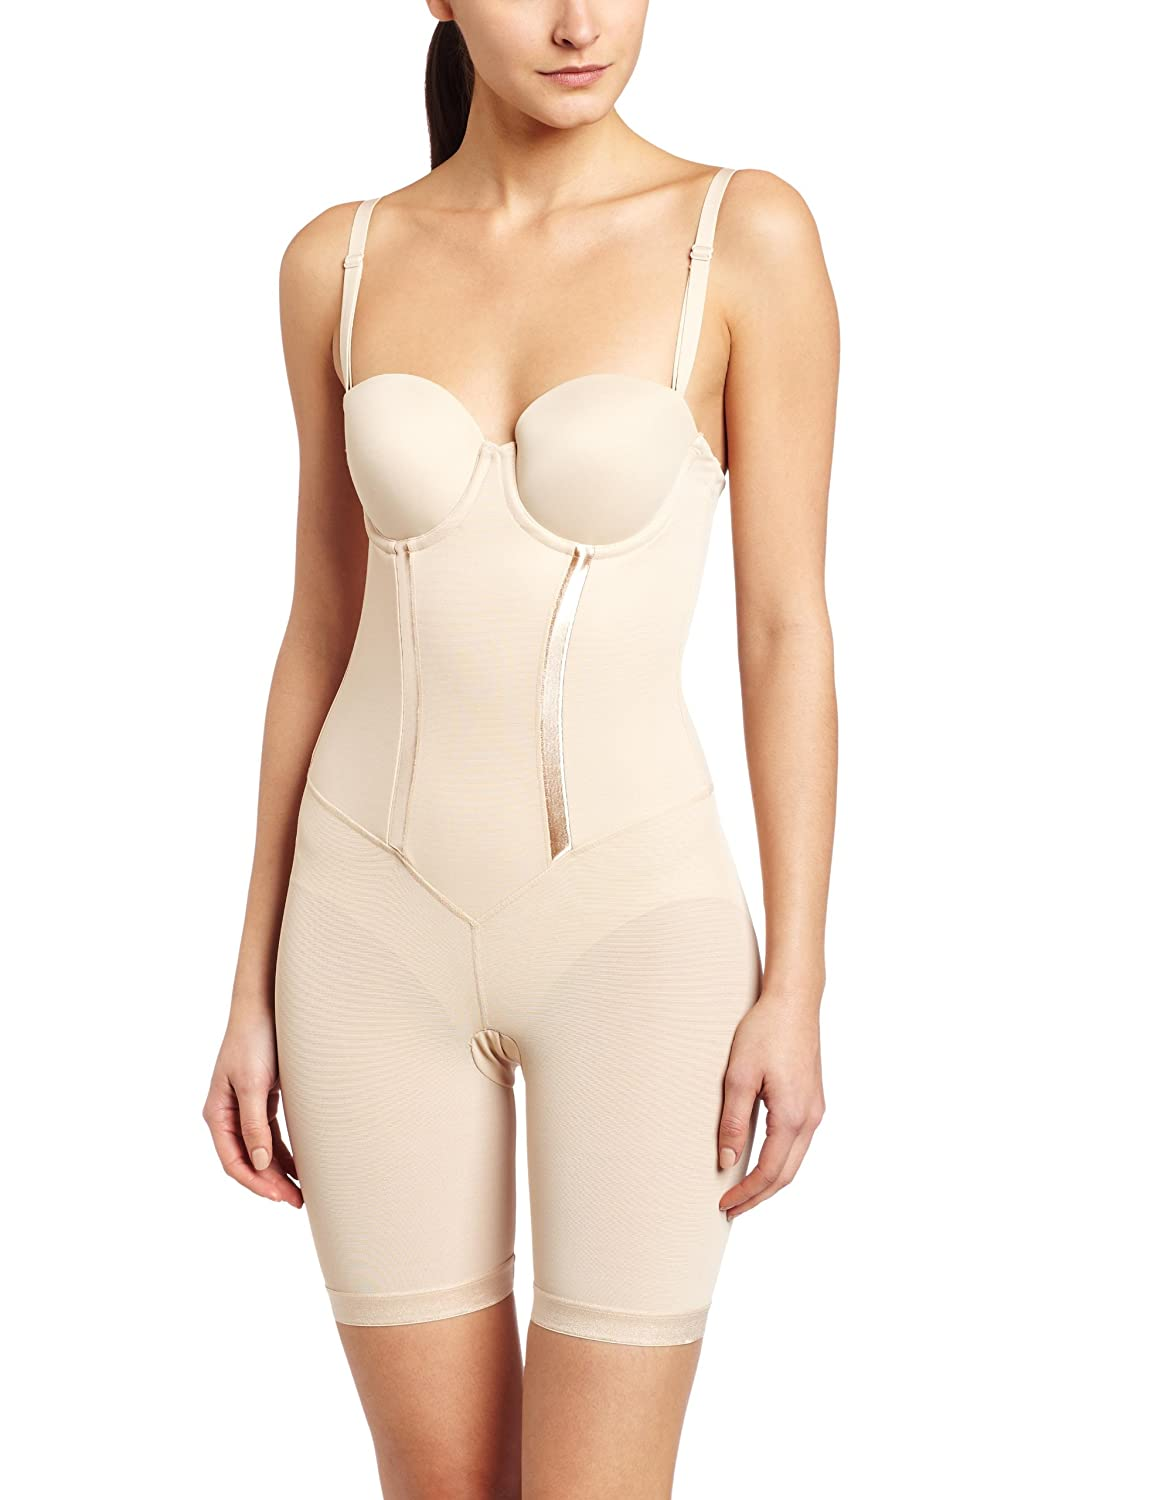 Maidenform Flexees Body mit Bein Form Control Shaping kaufen